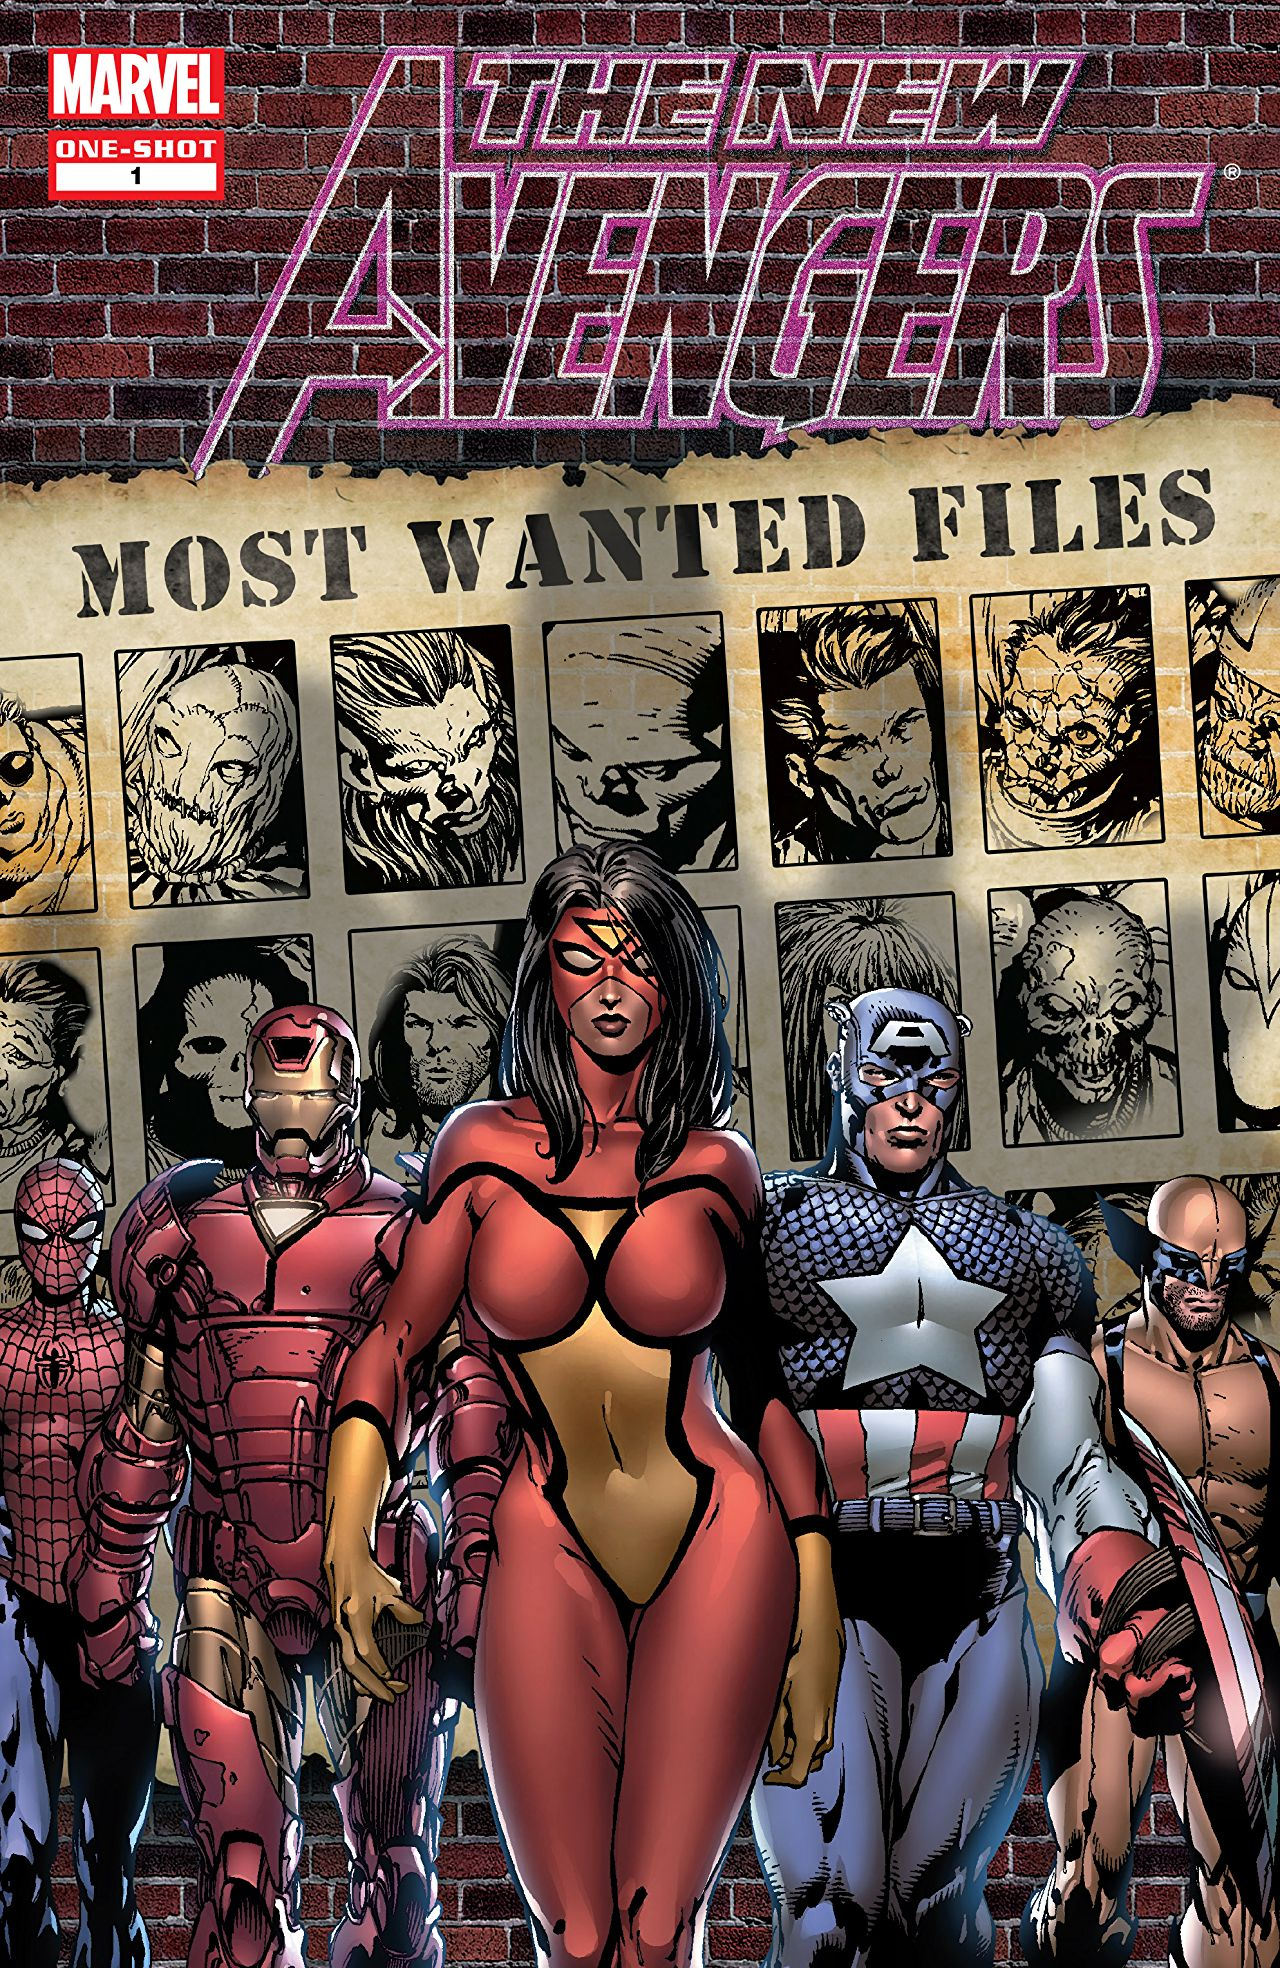 New Avengers Most Wanted Files Vol 1 1